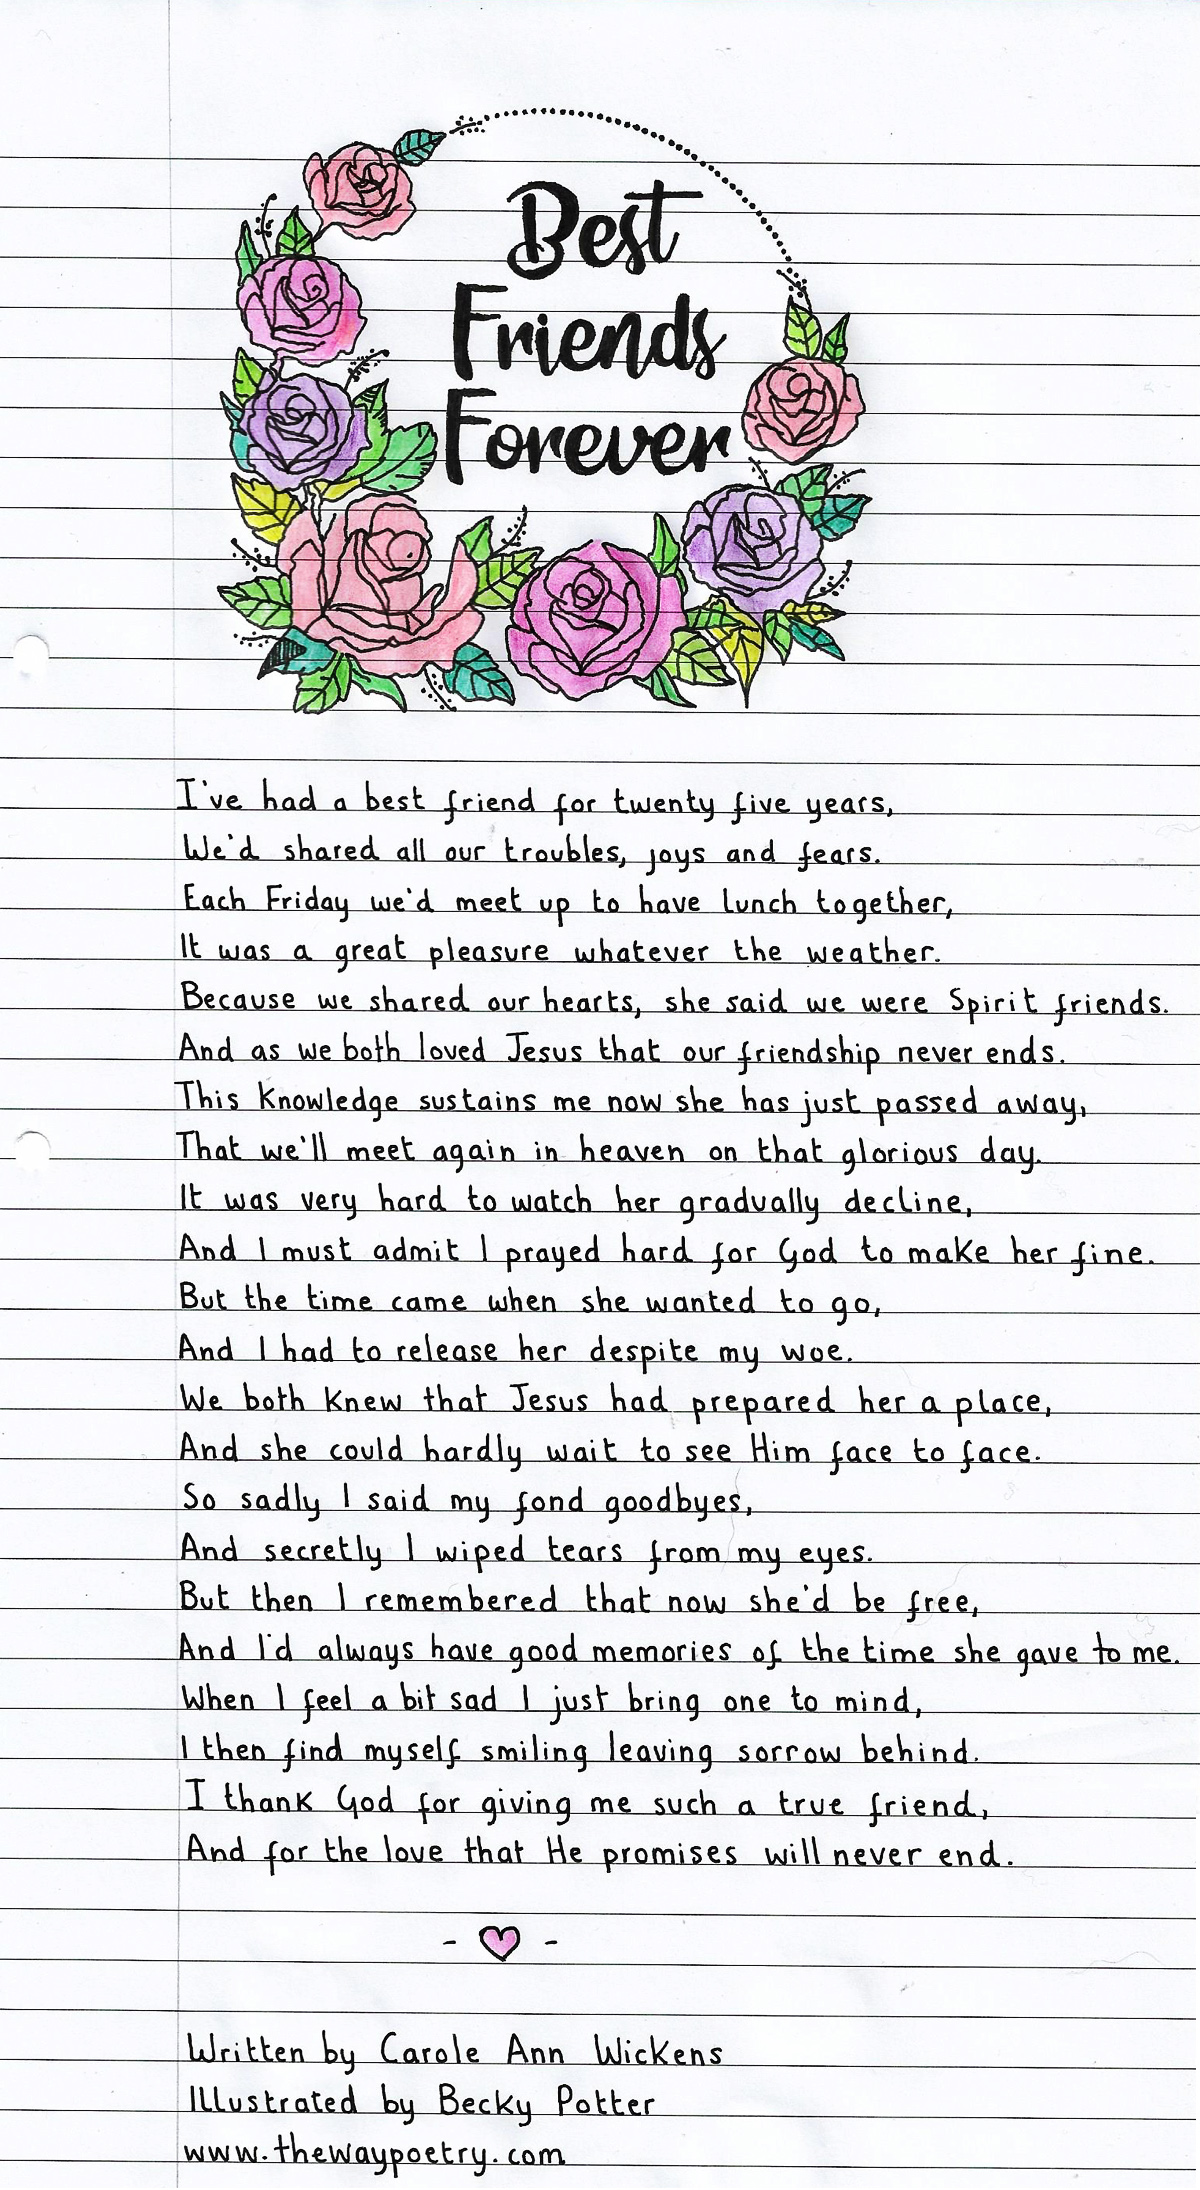 Best Friends Forever by Carole Ann Wickens